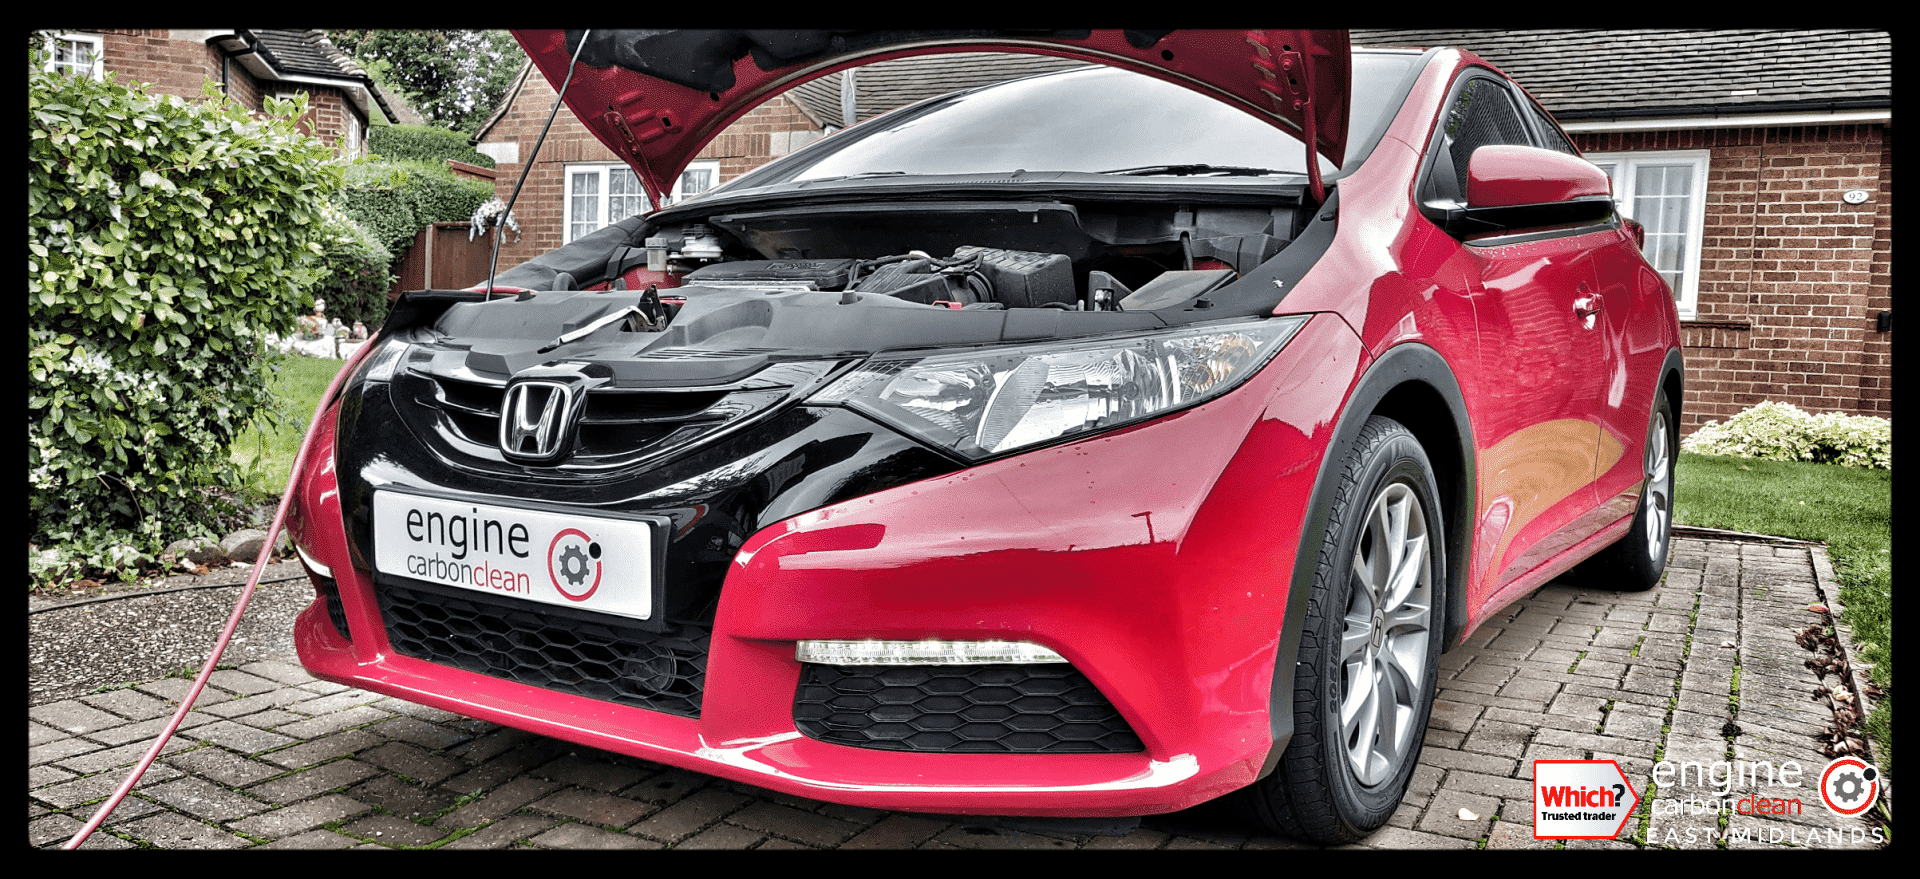 Just bought a car? Diagnostic and Engine Carbon Clean - Honda Civic 1.4 petrol (2015 - 27,795 miles)